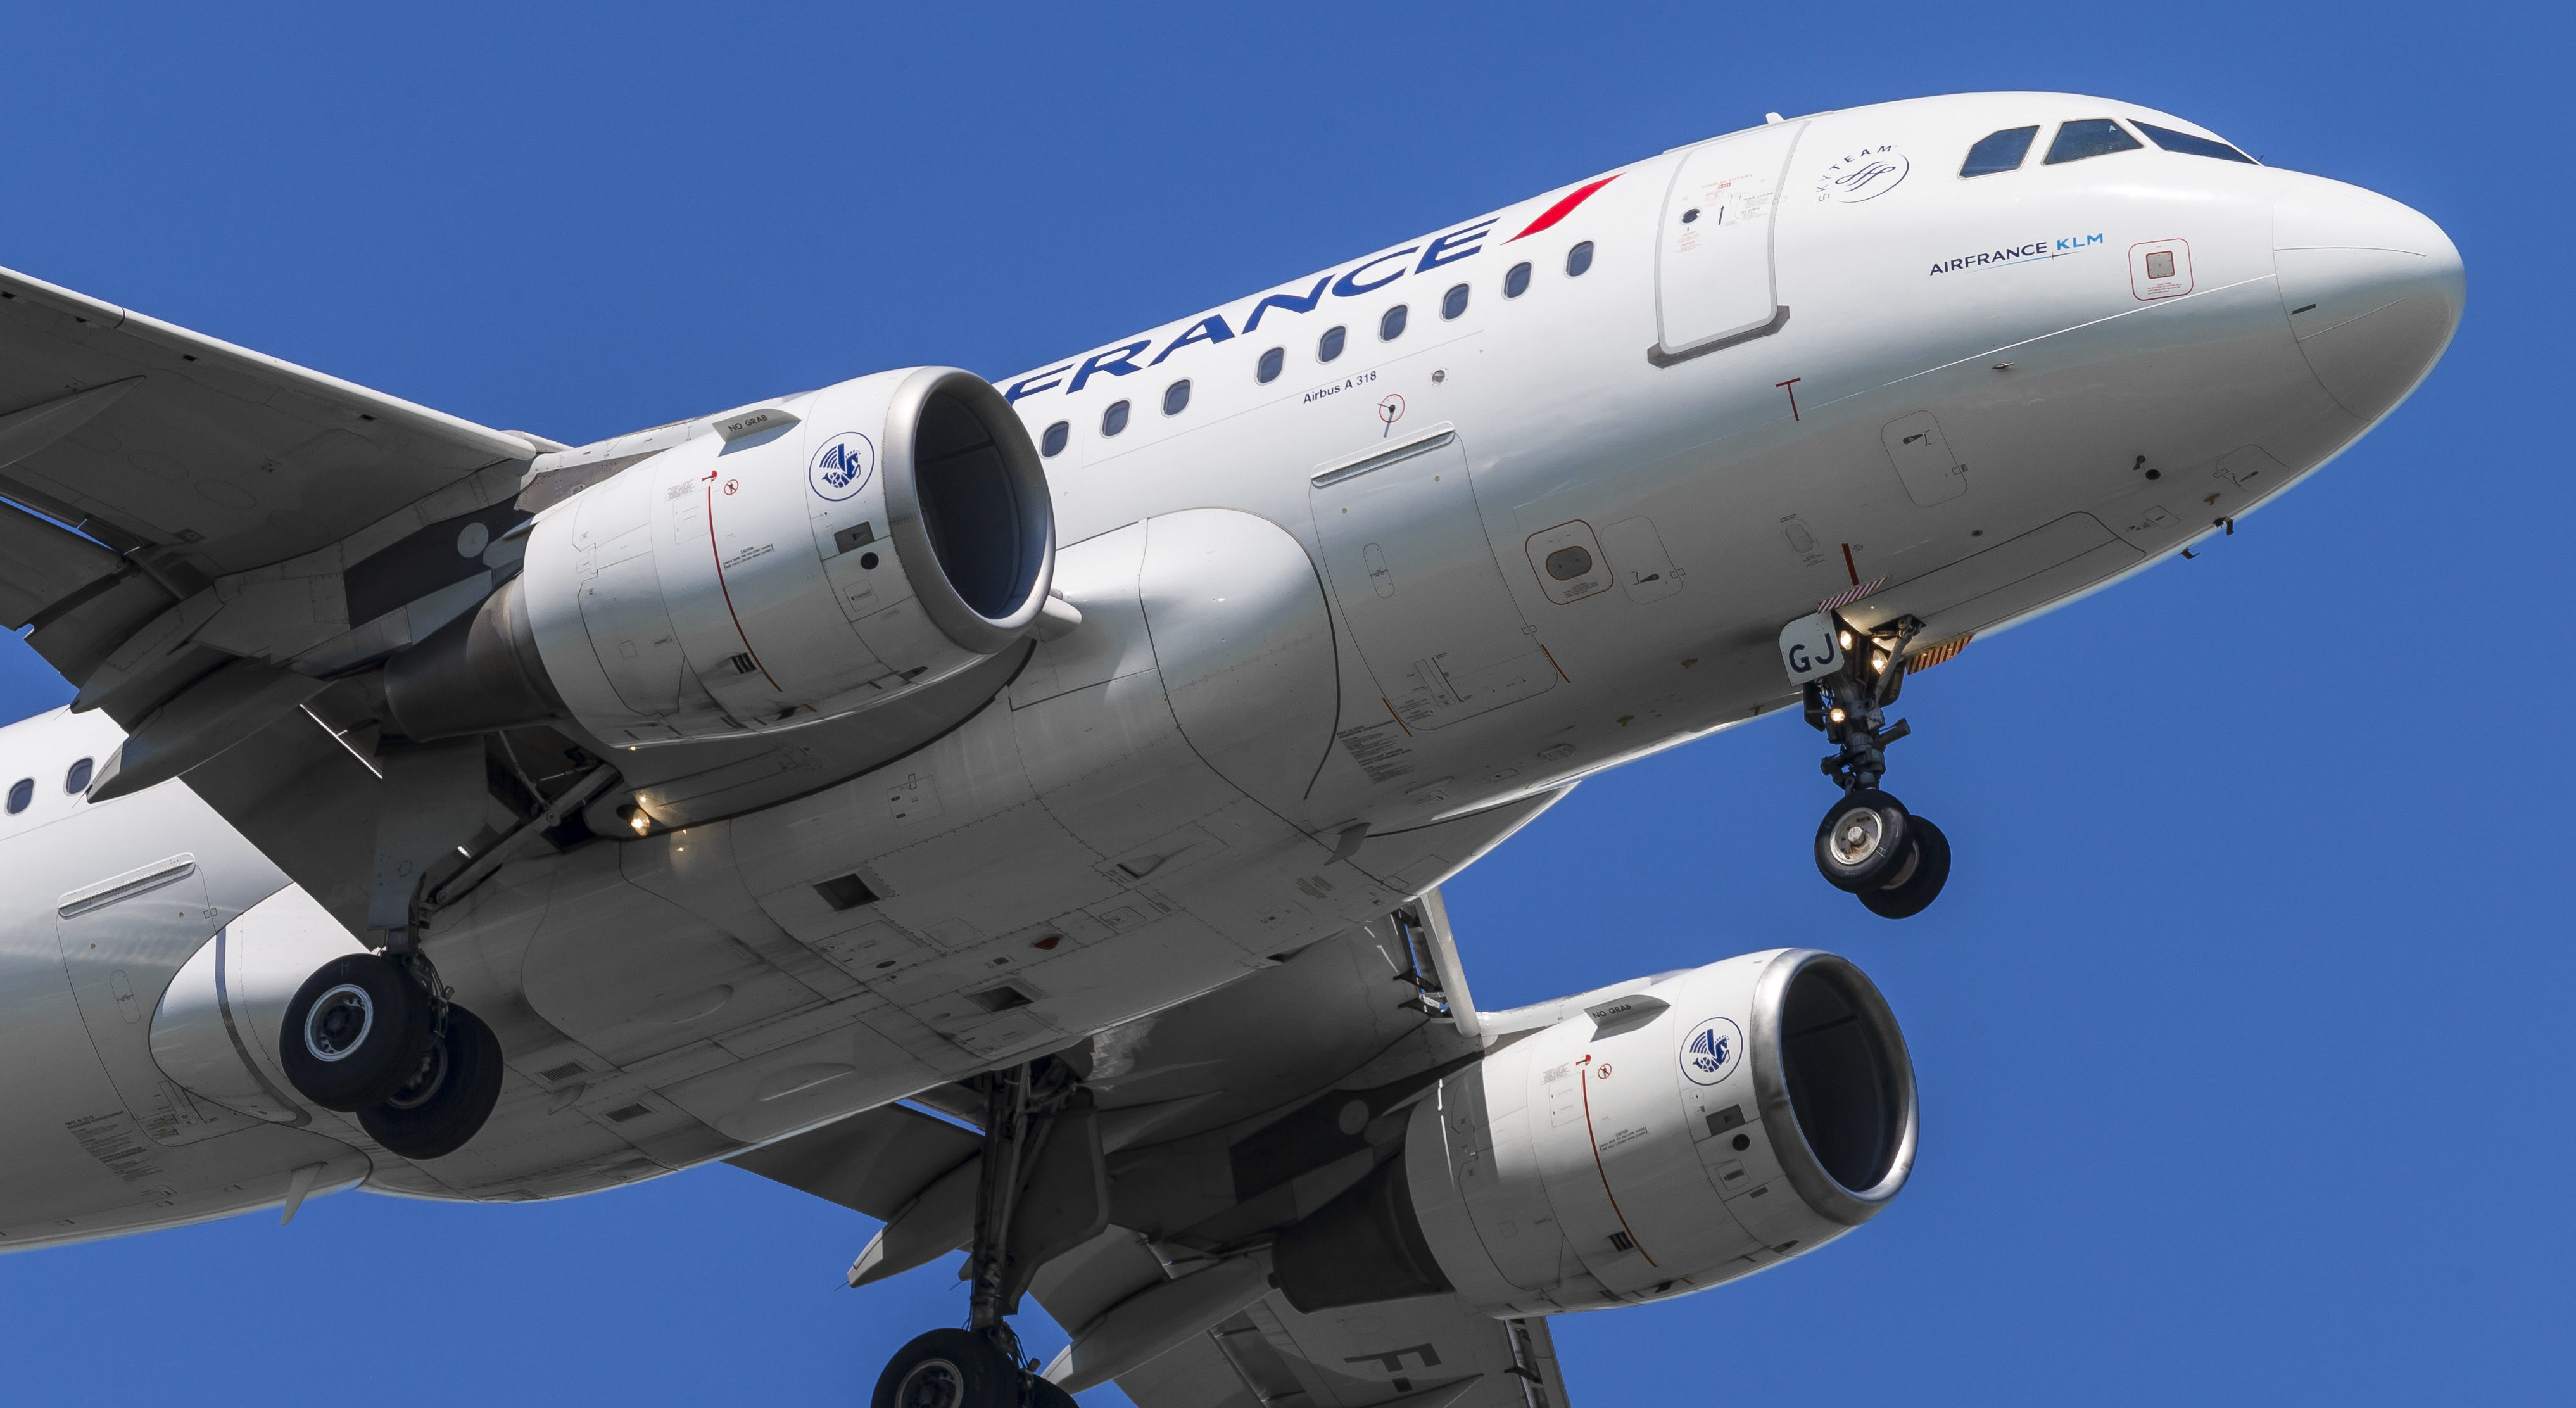 En Airbus A318 fra Air France. Foto: © Thorbjørn Brunander Sund, Danish Aviation Photo